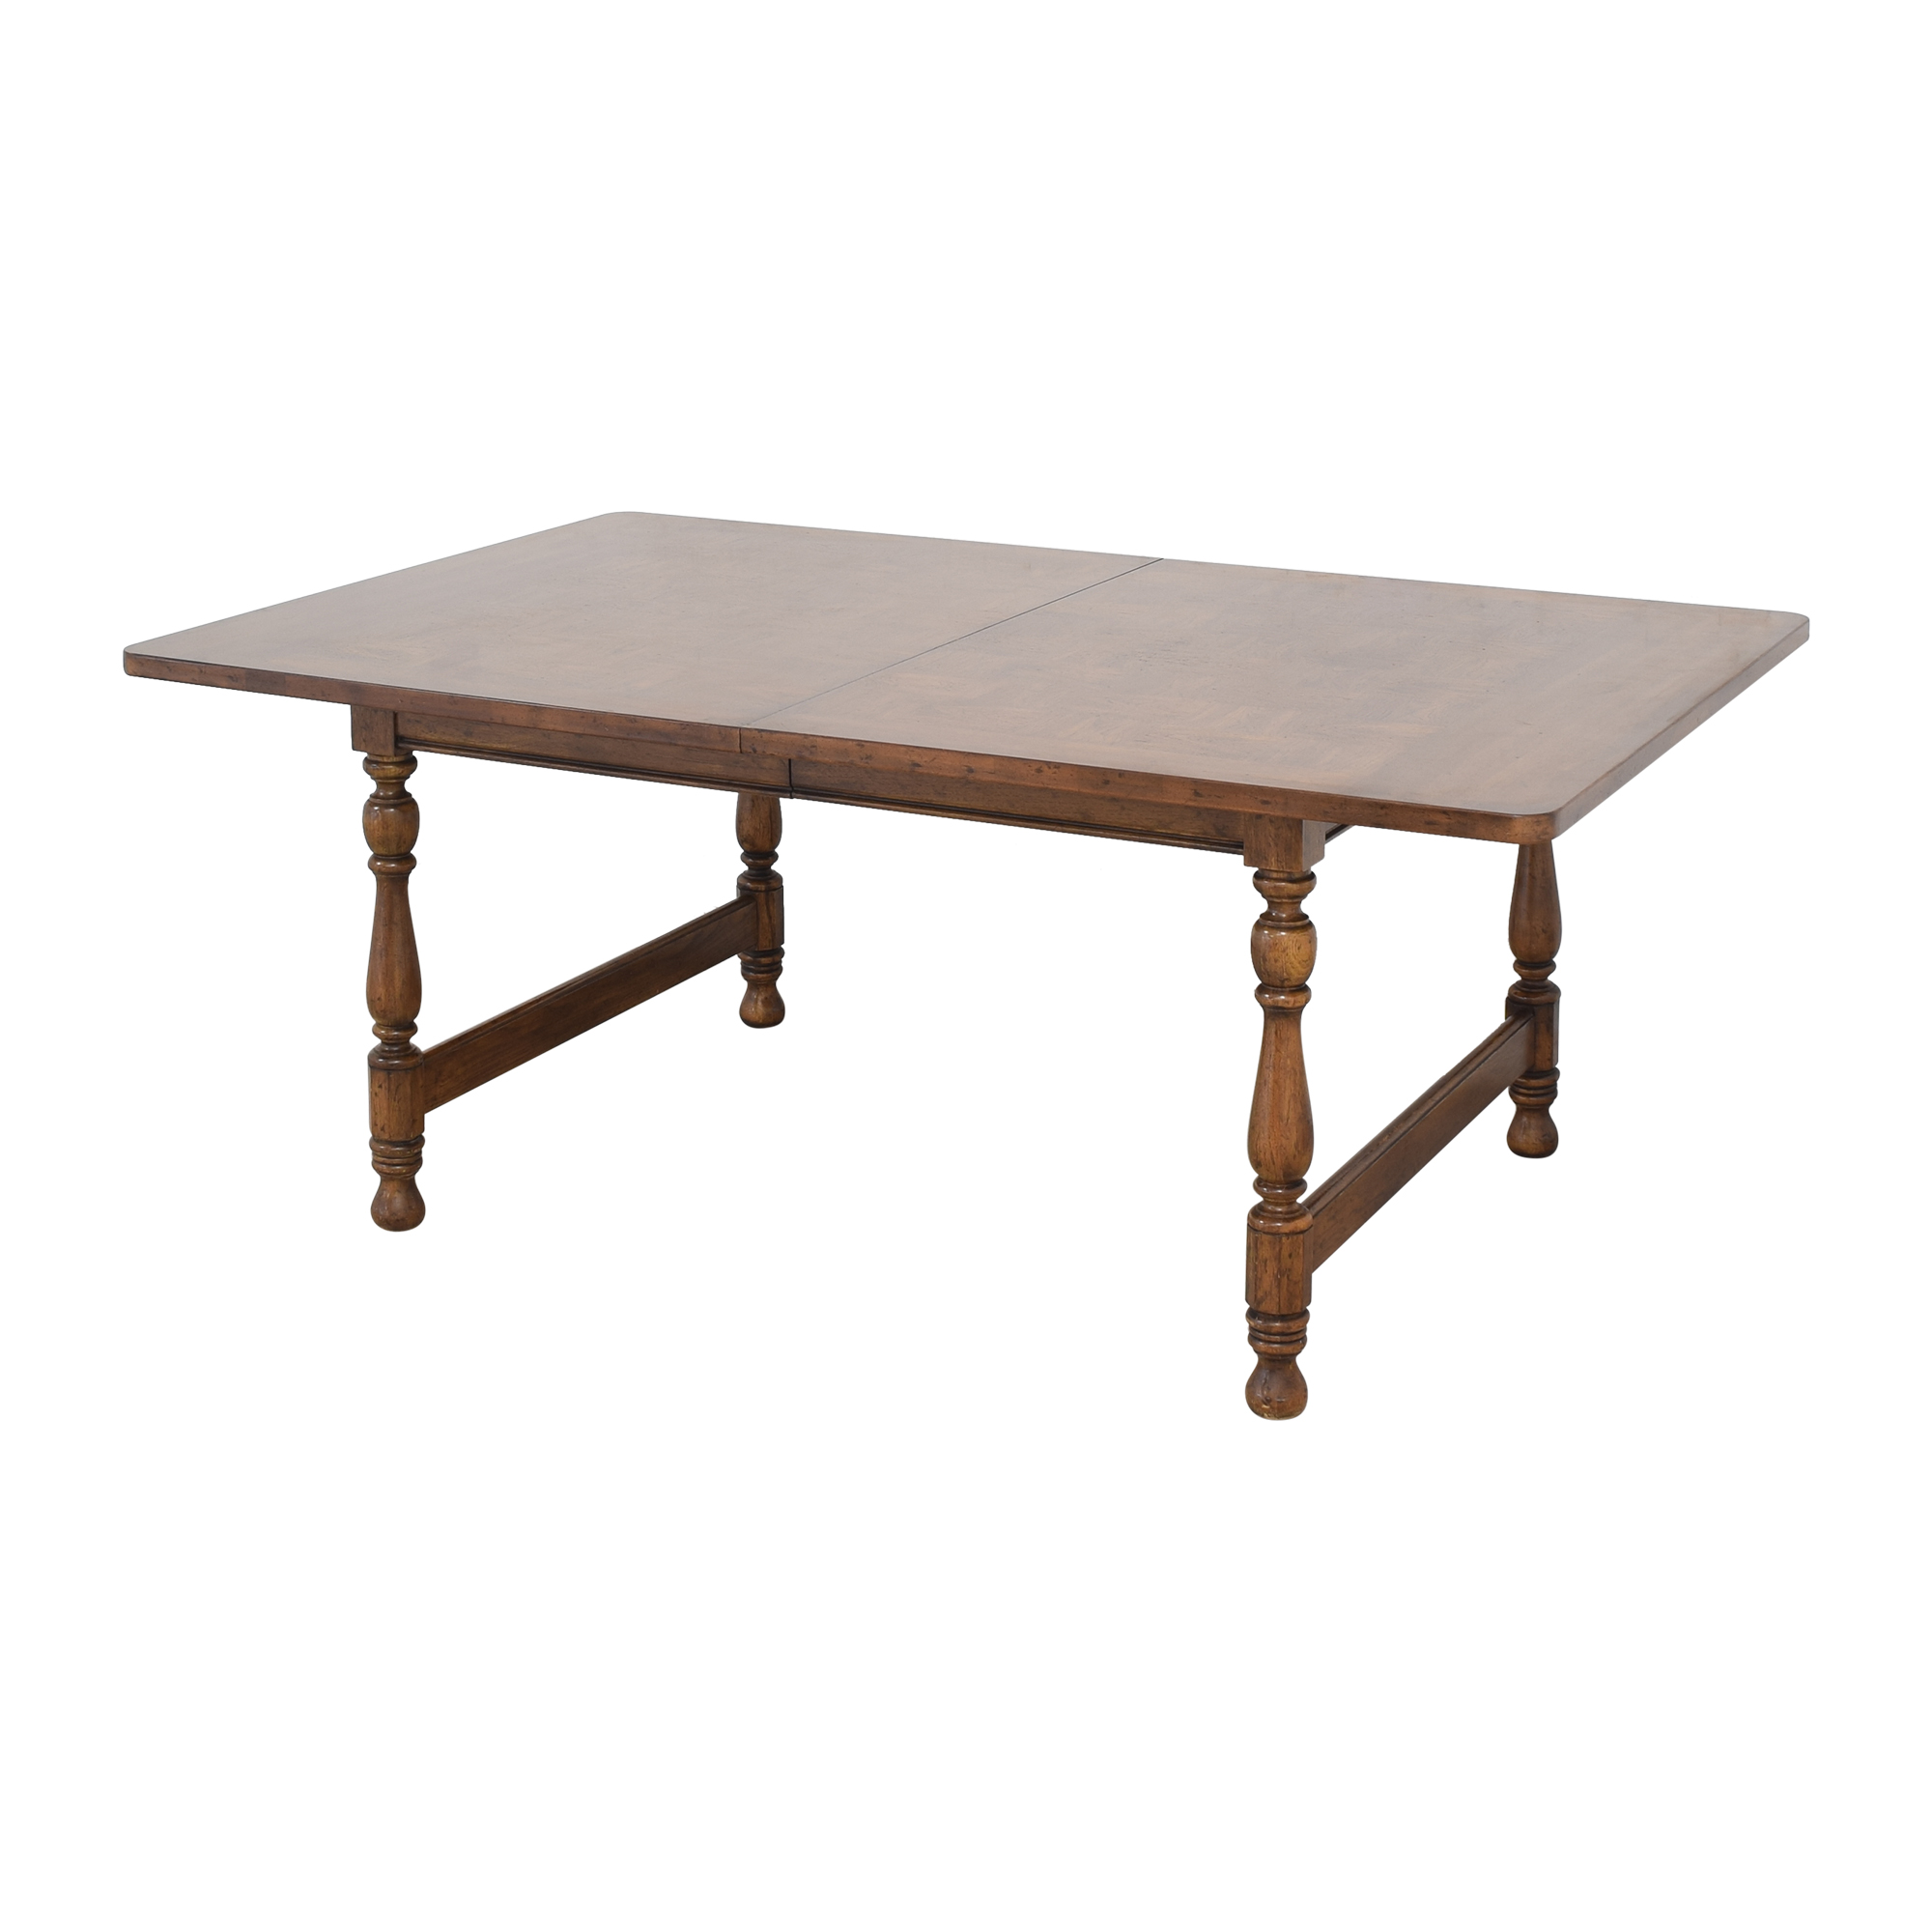 Heritage Heritage Rectangular Dining Table second hand